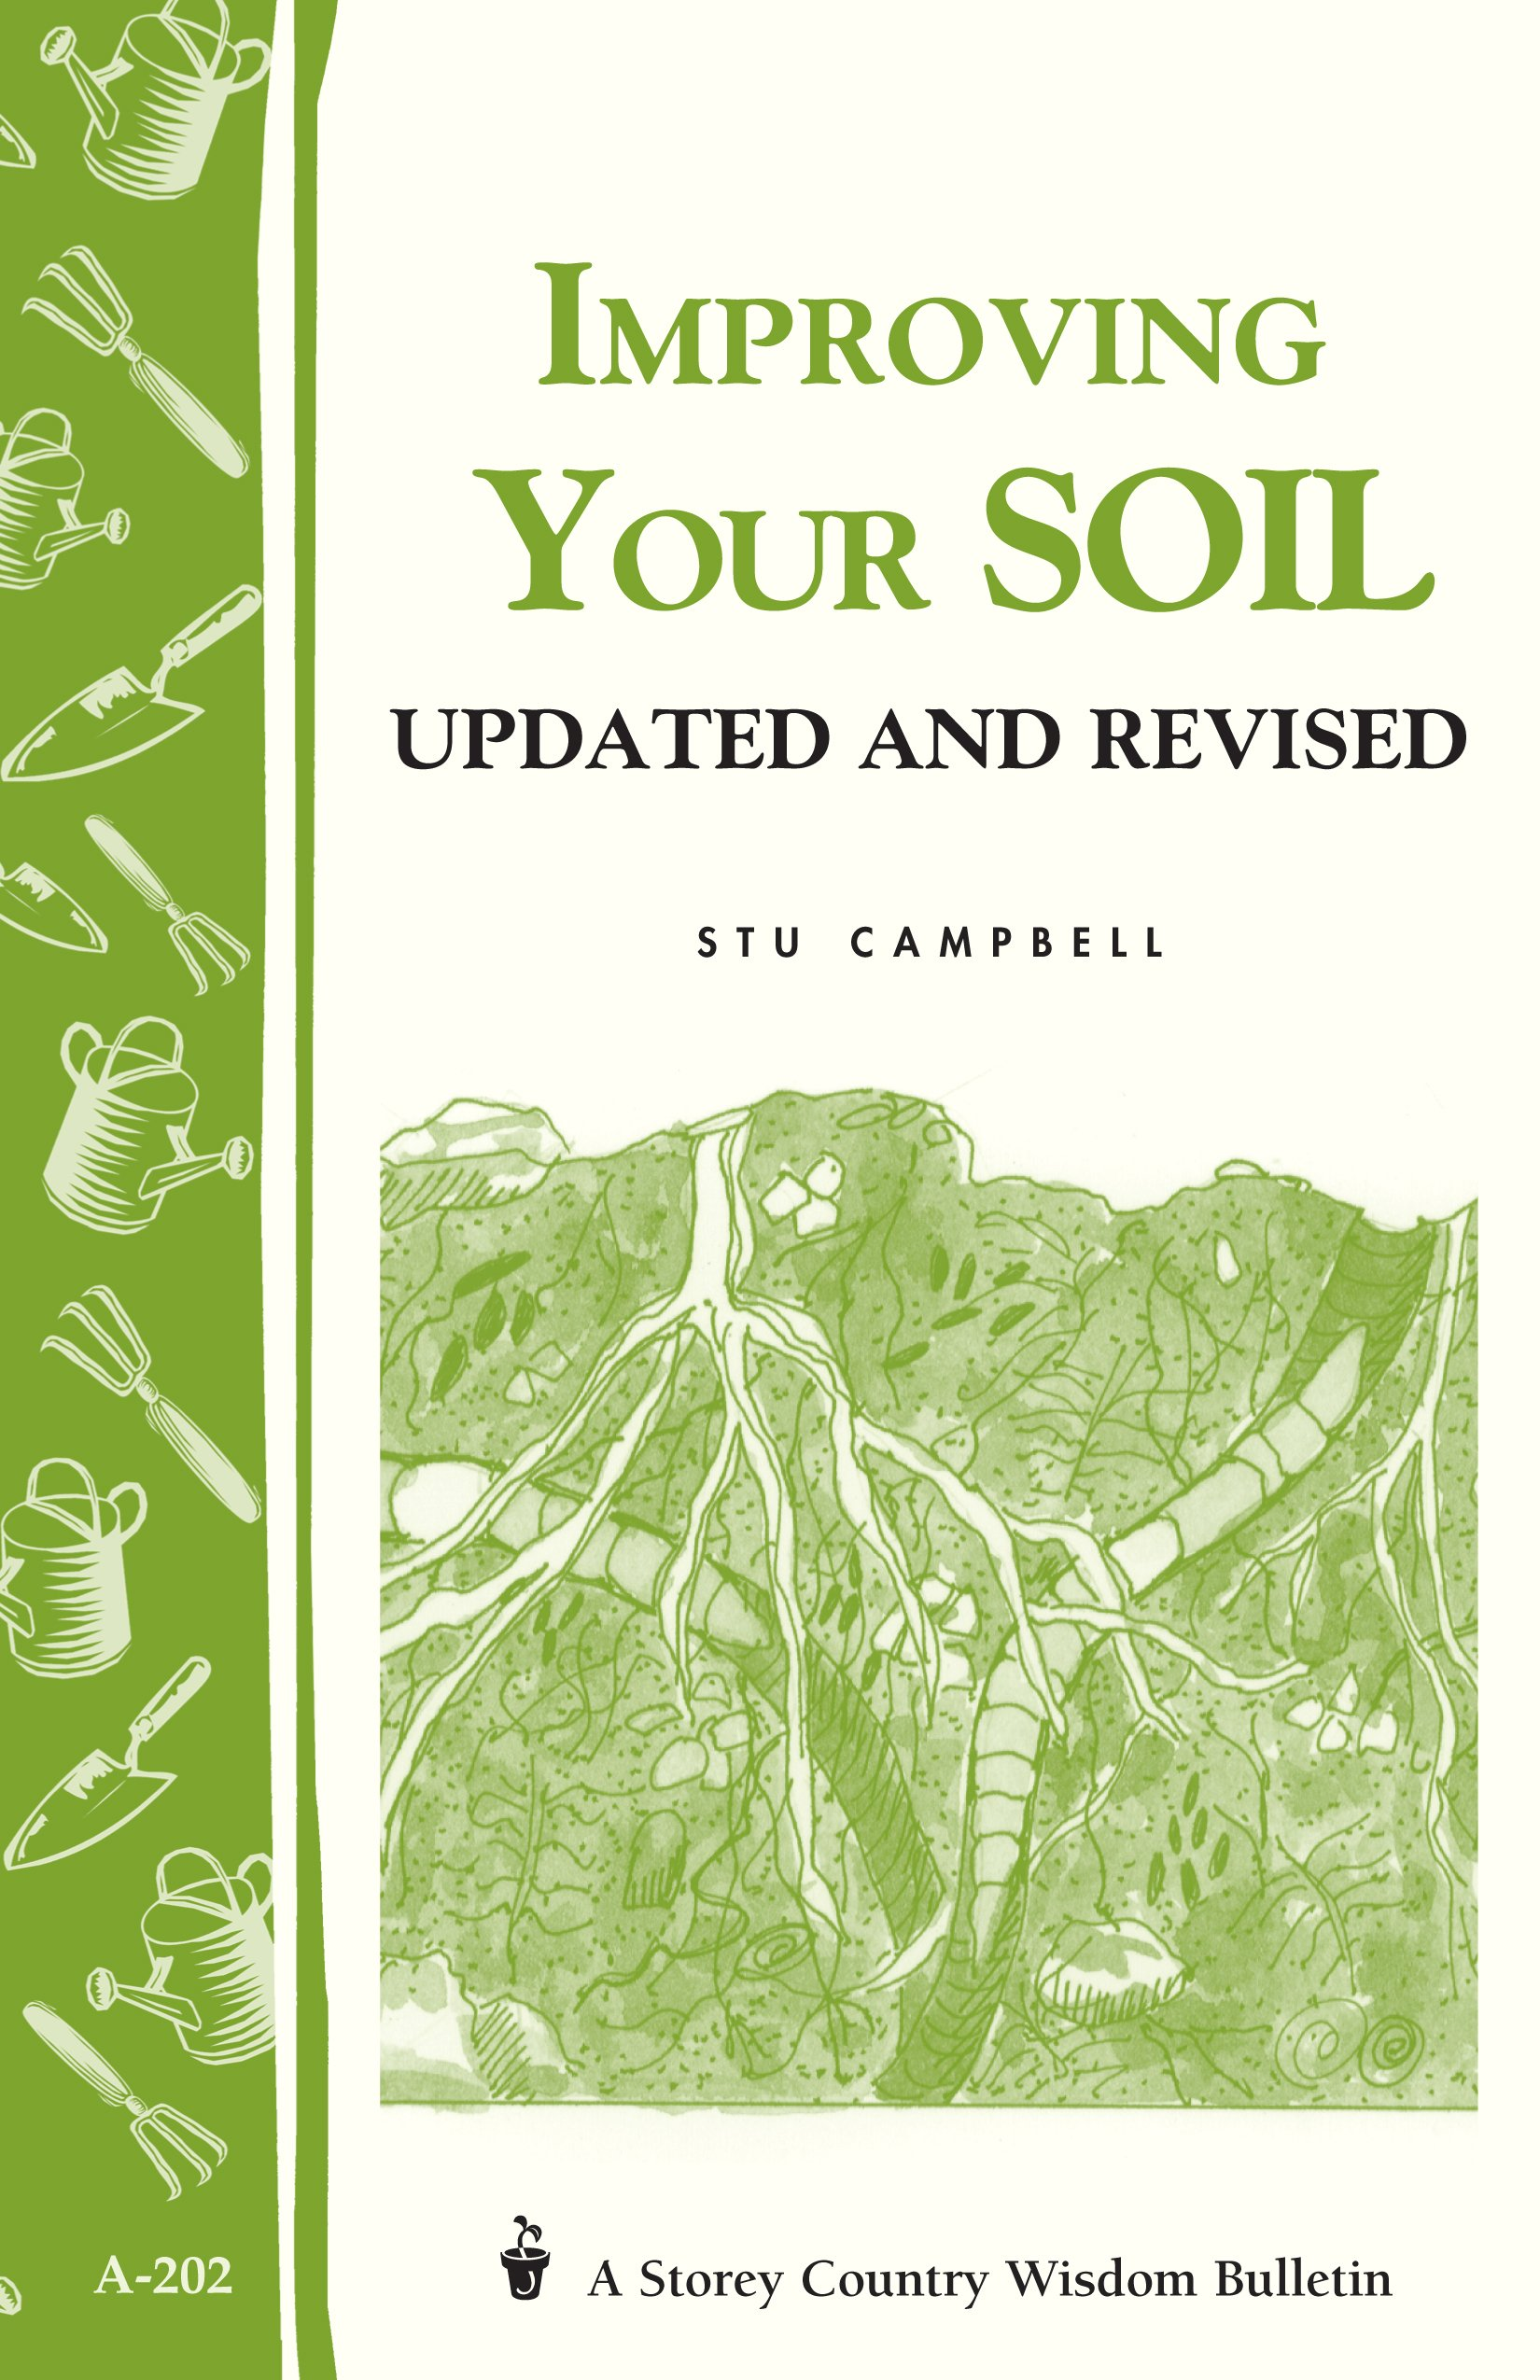 Improving Your Soil: Storey's Country Wisdom Bulletin A-202 (Storey Country Wisdom Bulletin, A-202)